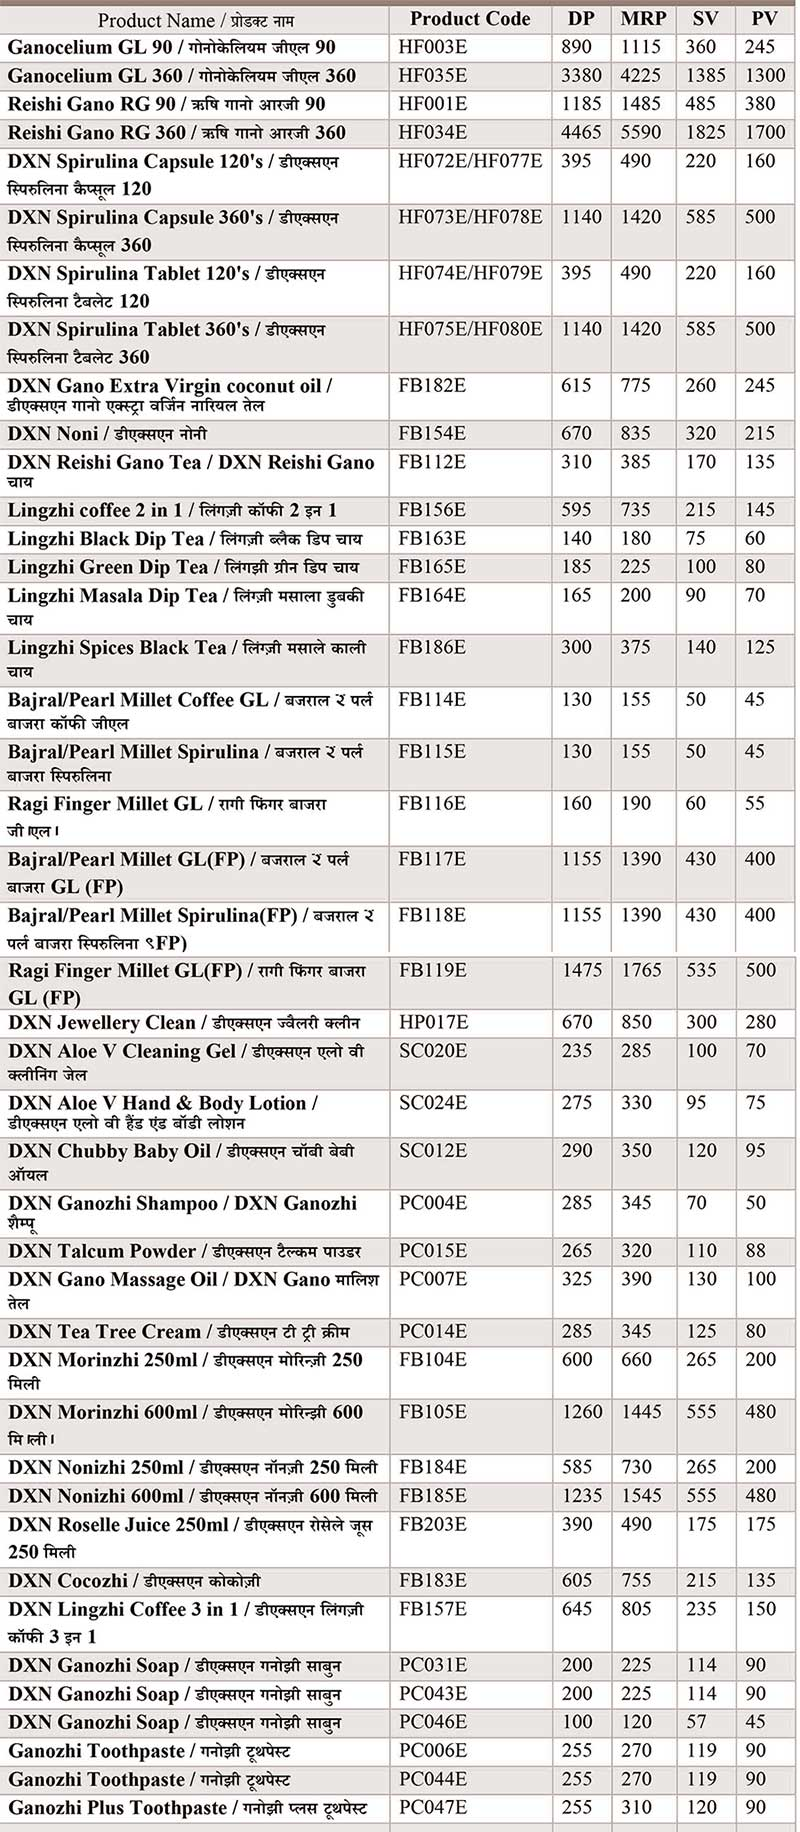 dxn all products price list